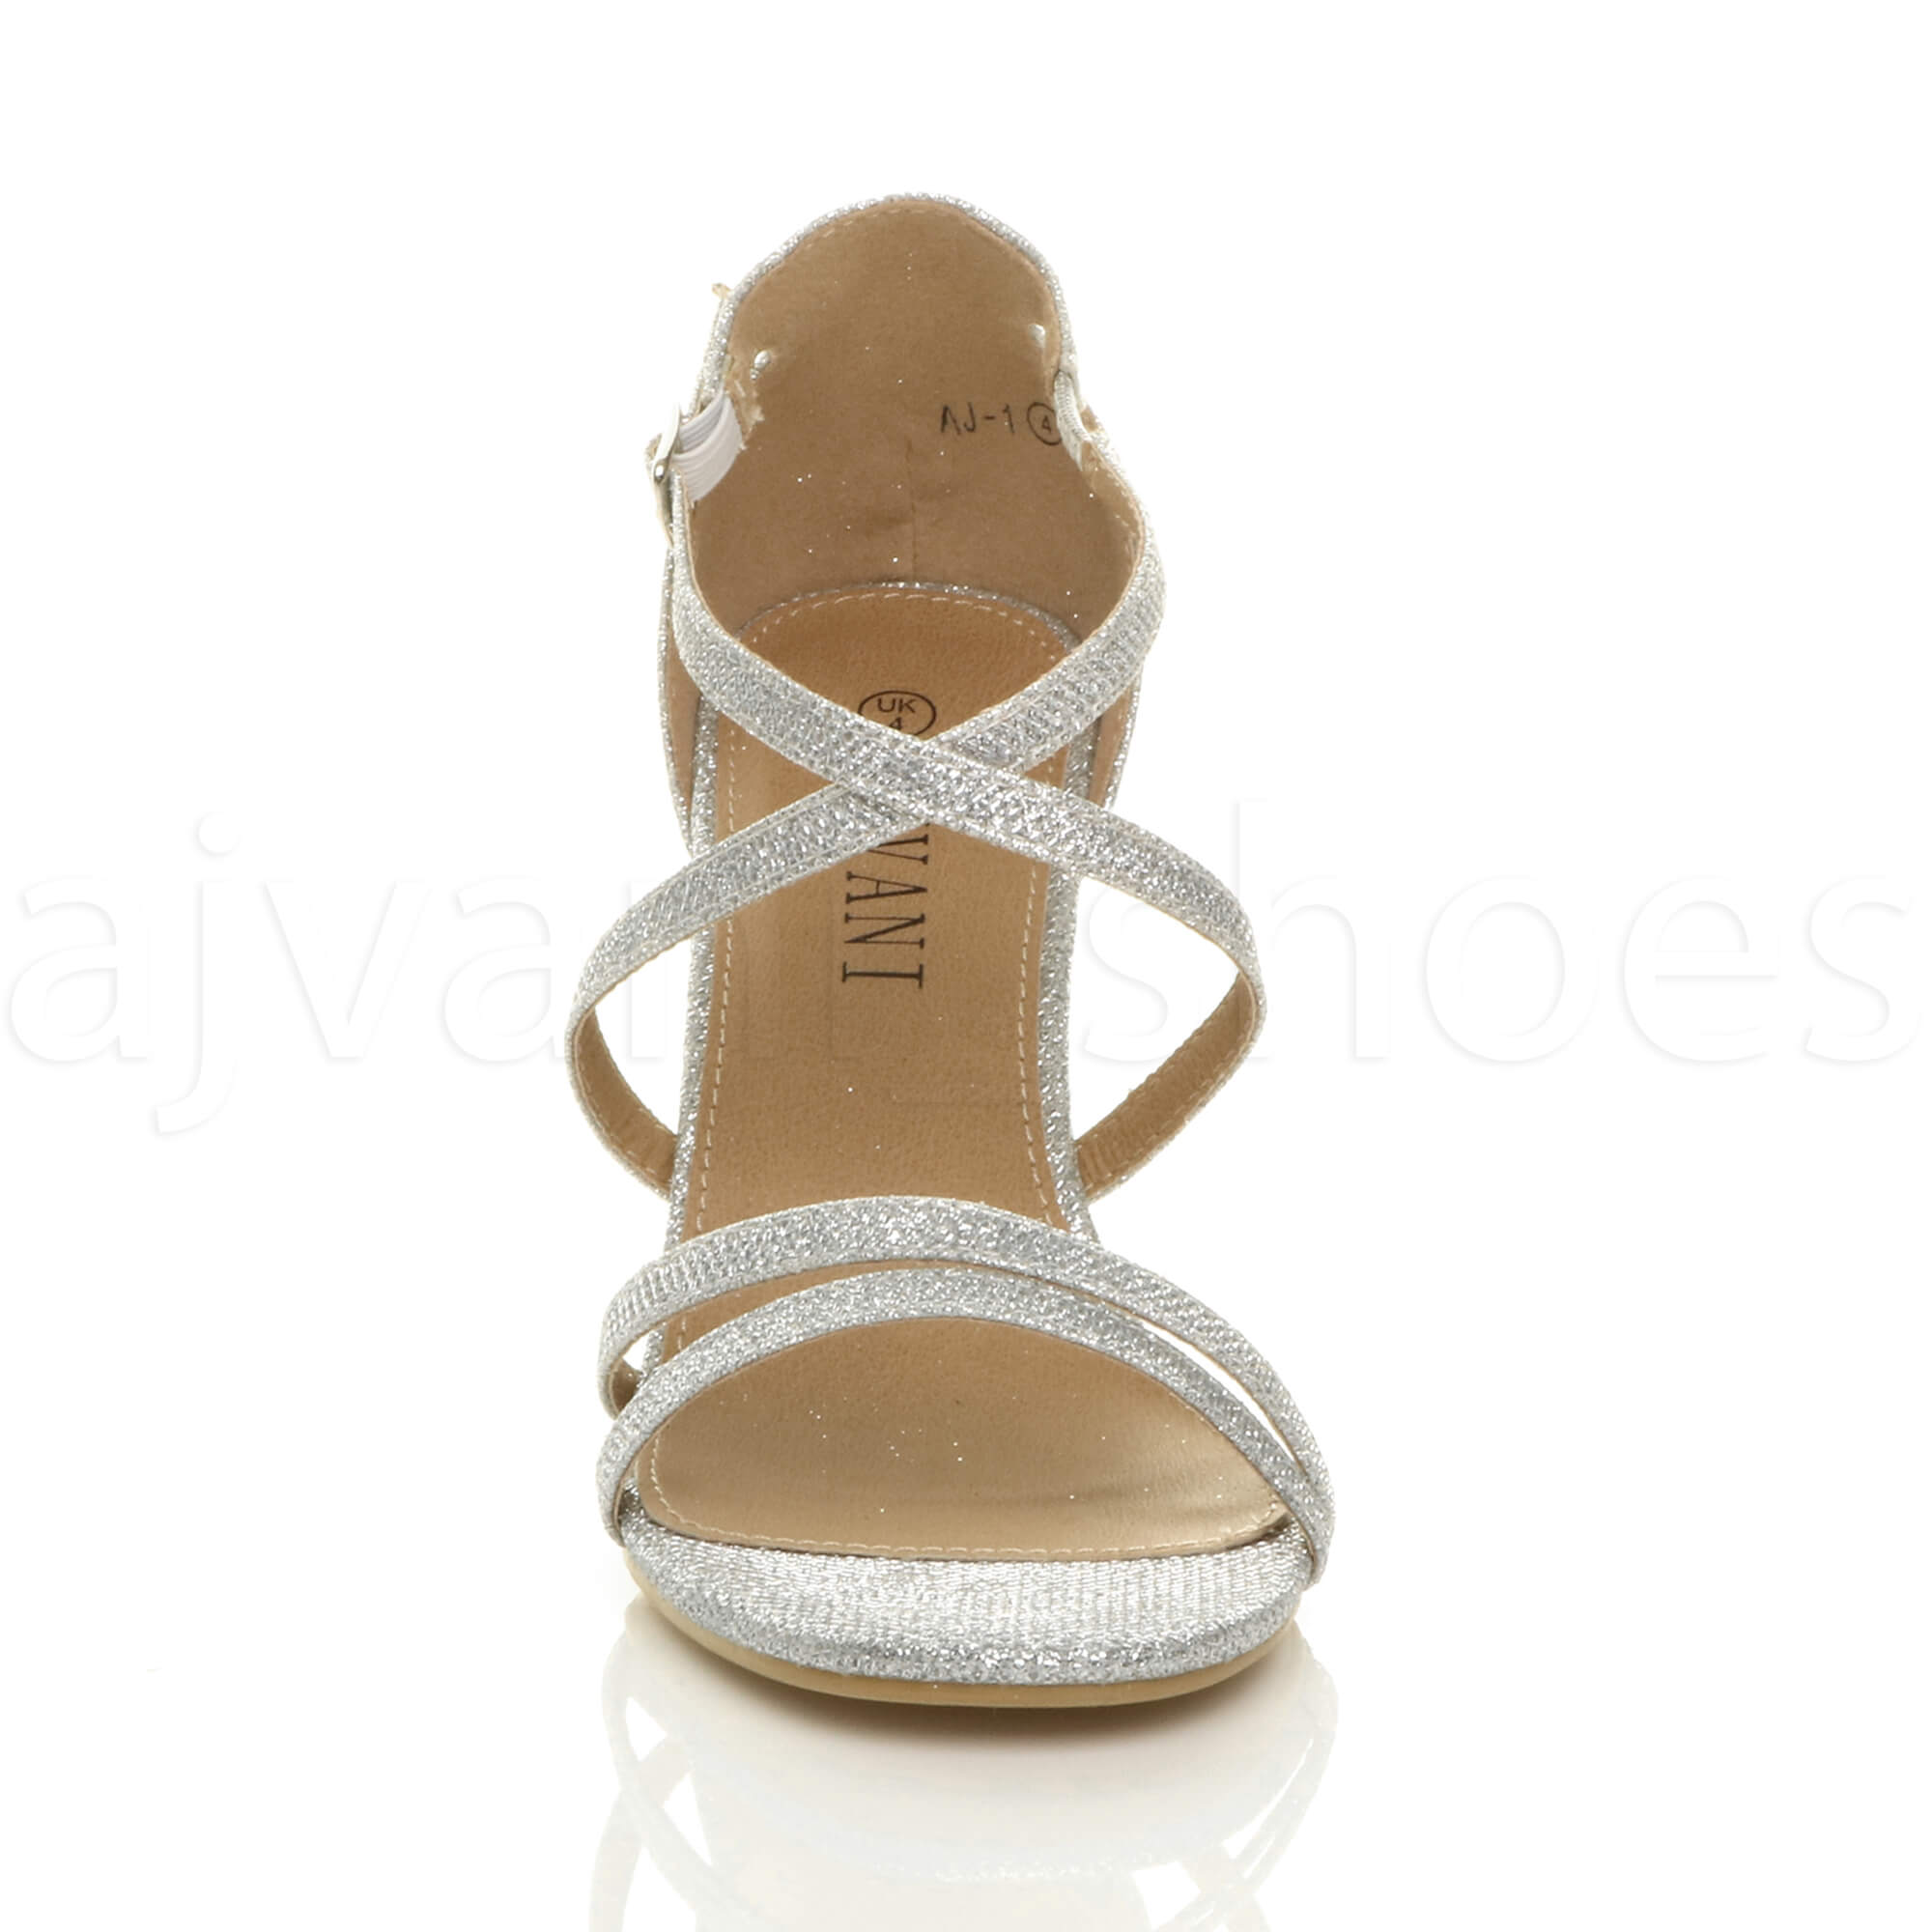 WOMENS-LADIES-MID-HIGH-HEEL-STRAPPY-CROSSOVER-WEDDING-PROM-SANDALS-SHOES-SIZE thumbnail 181